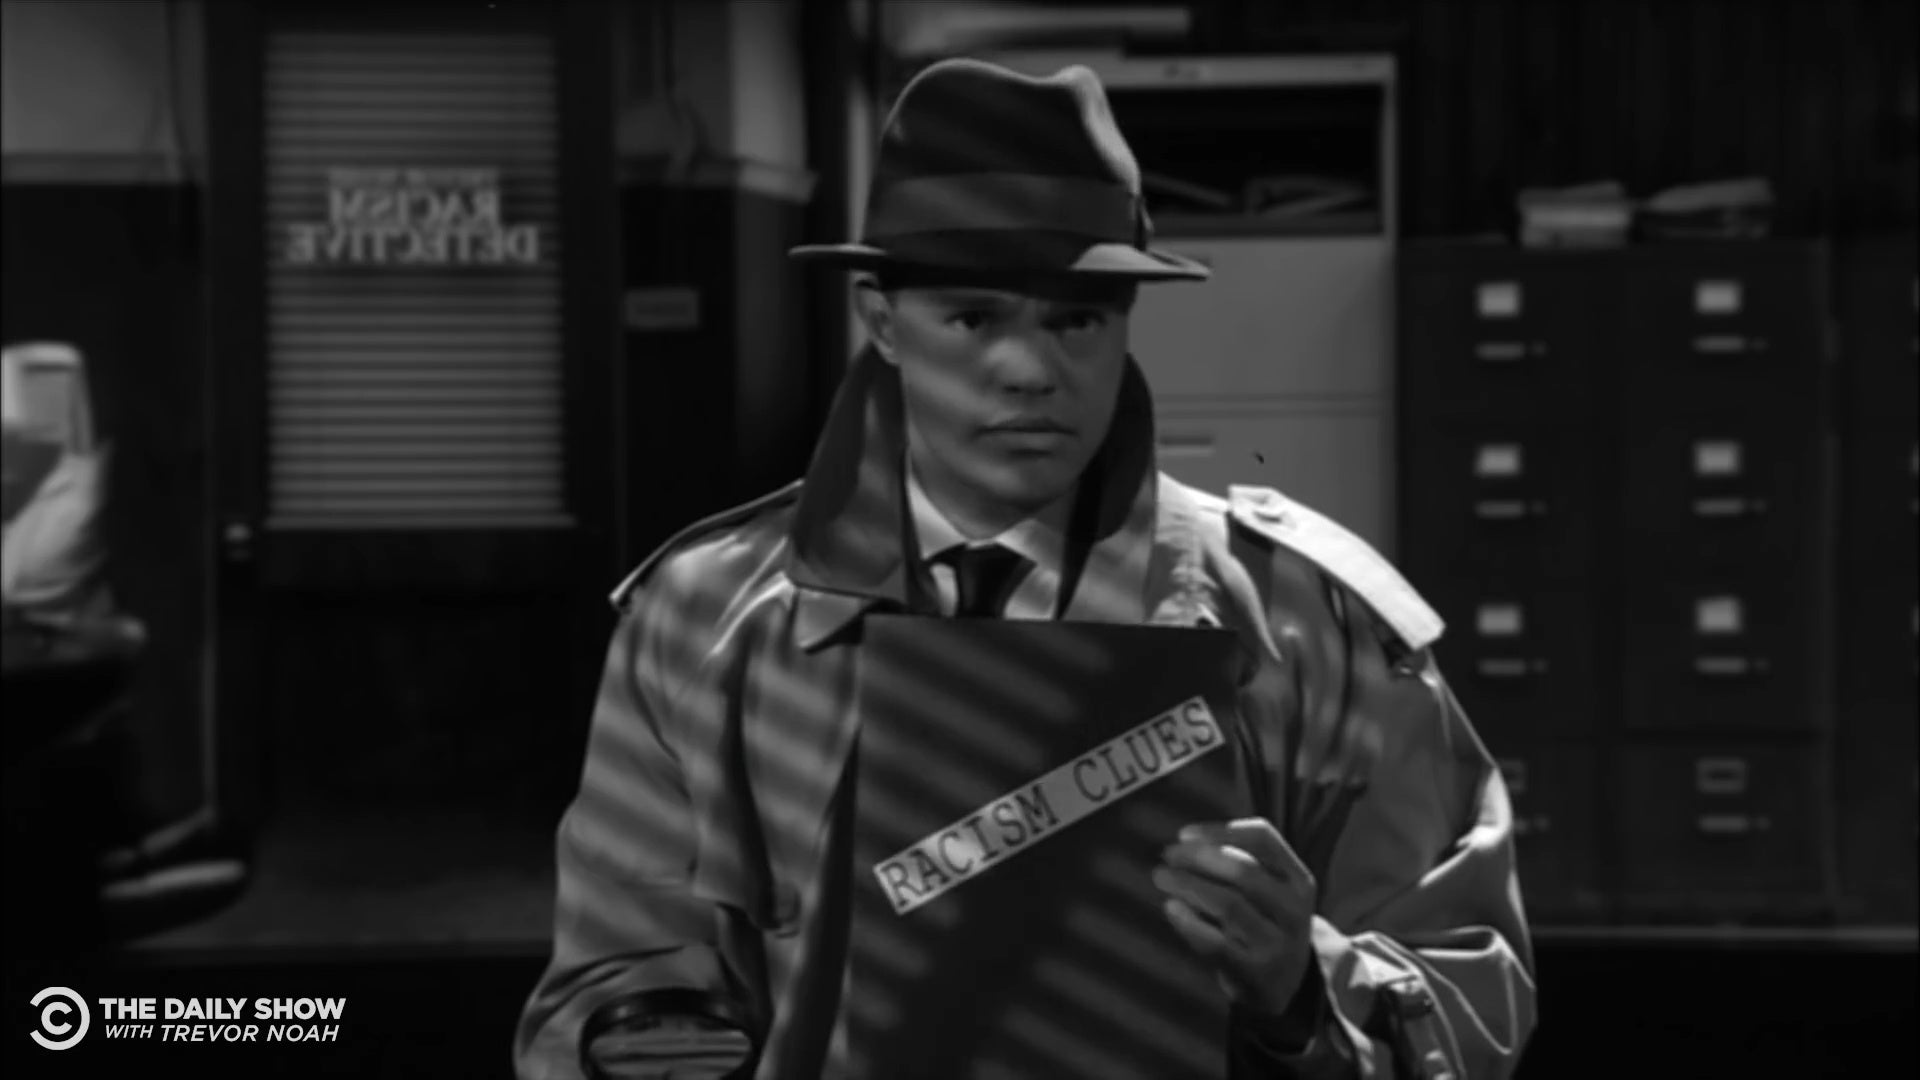 """Trevor Noah dressed as a 1940s detective, holding a folder labeled """"racism clues."""""""